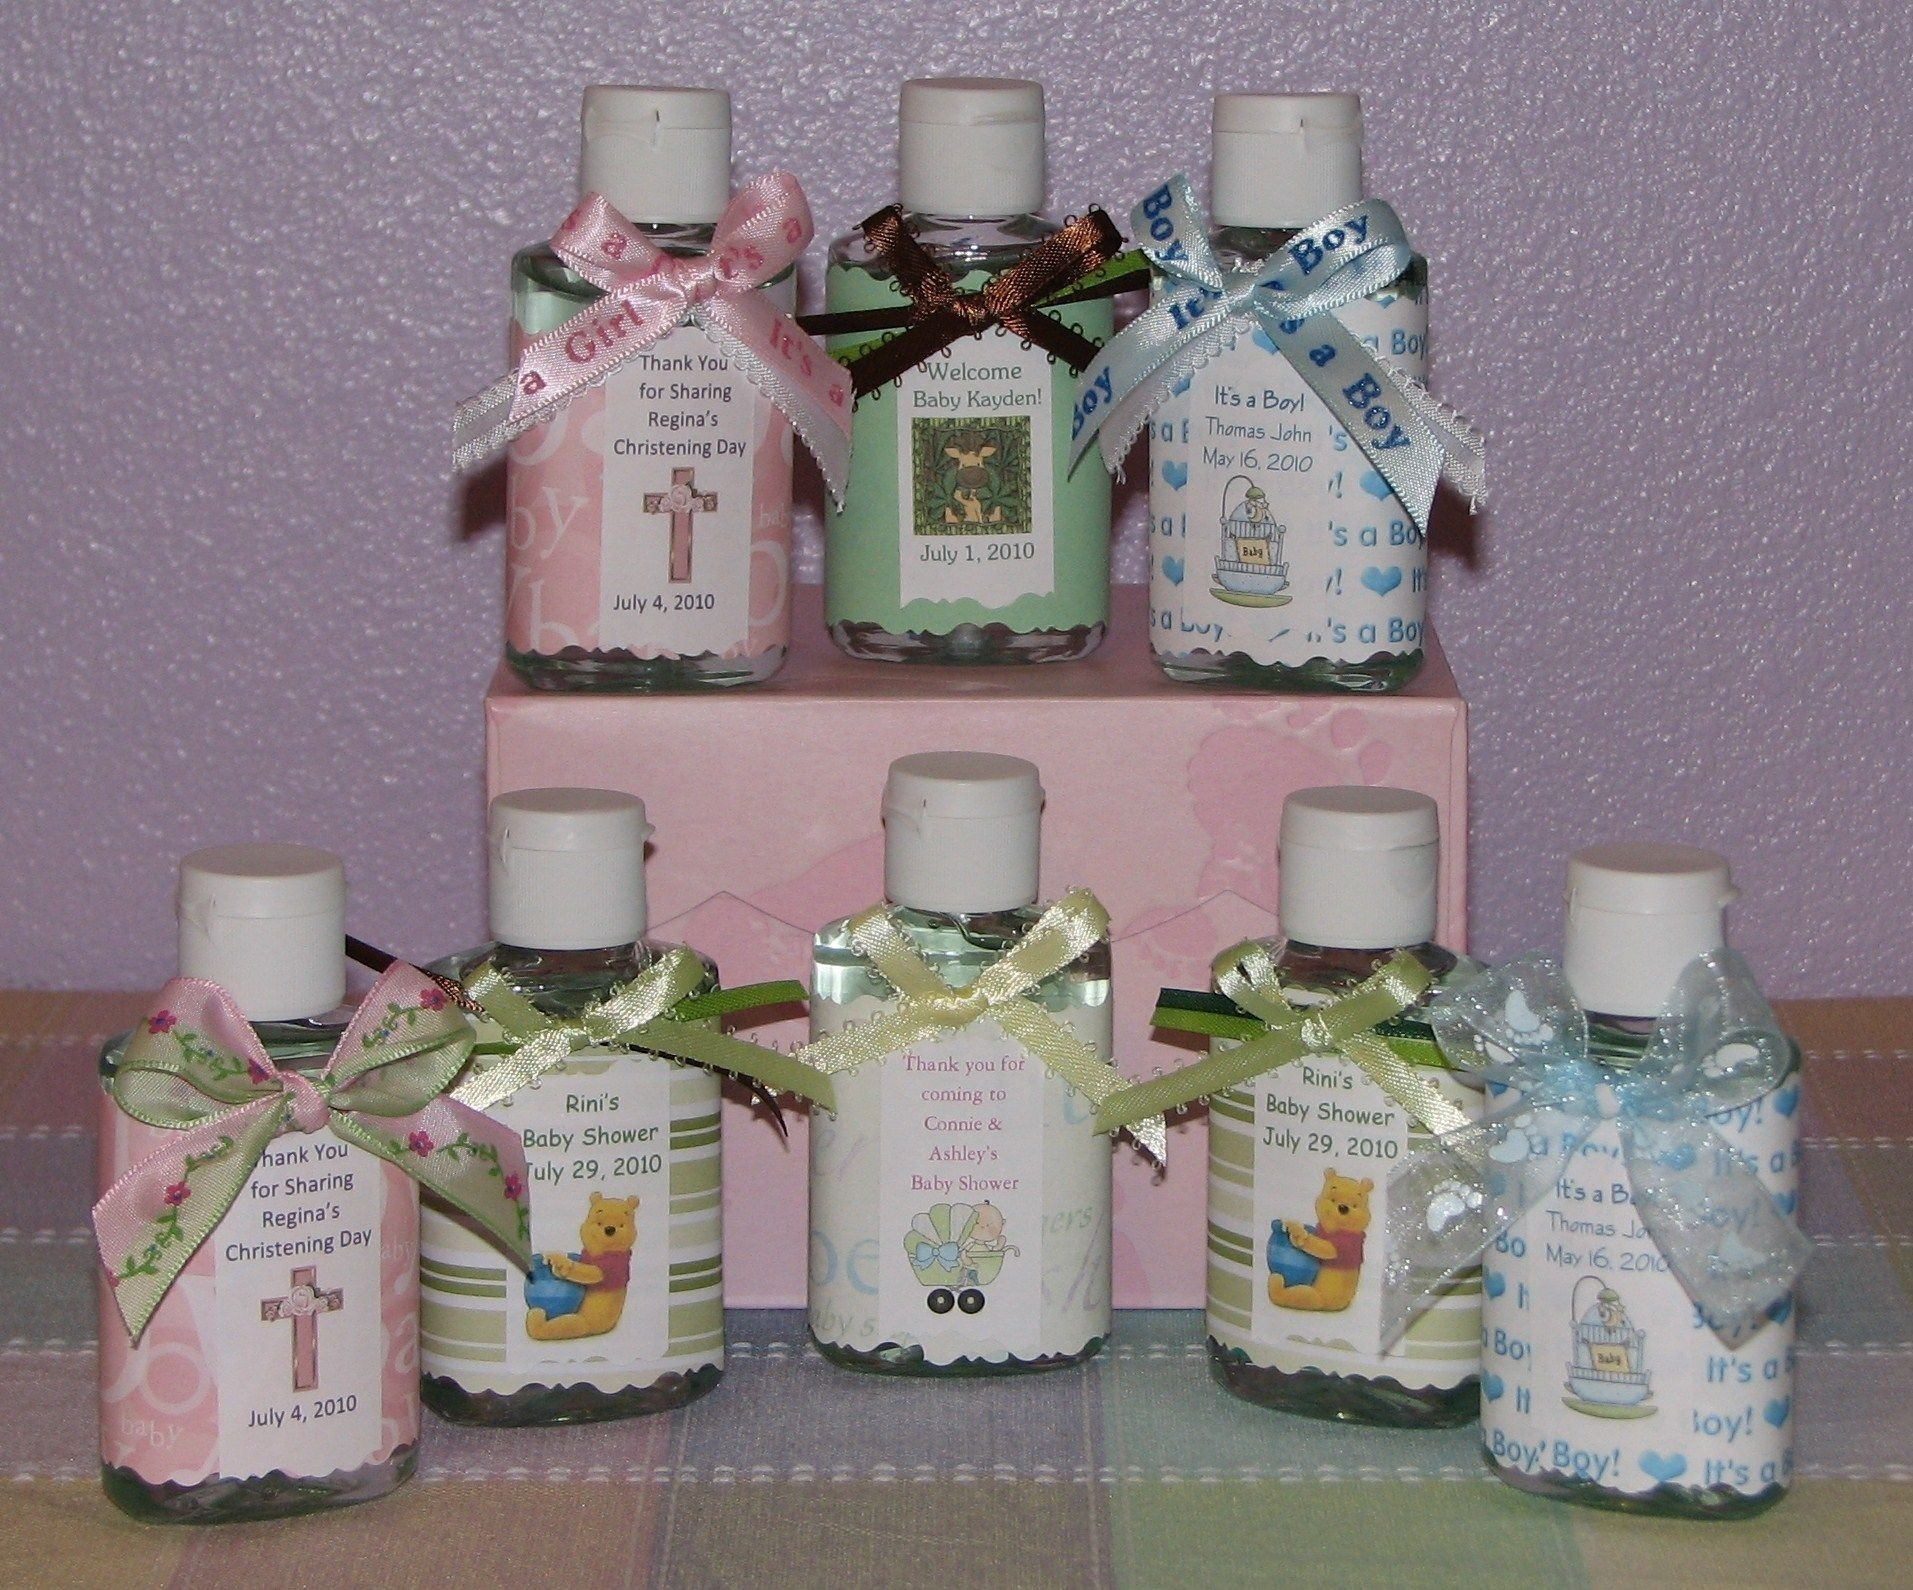 10 lovable baby shower favors ideas to make